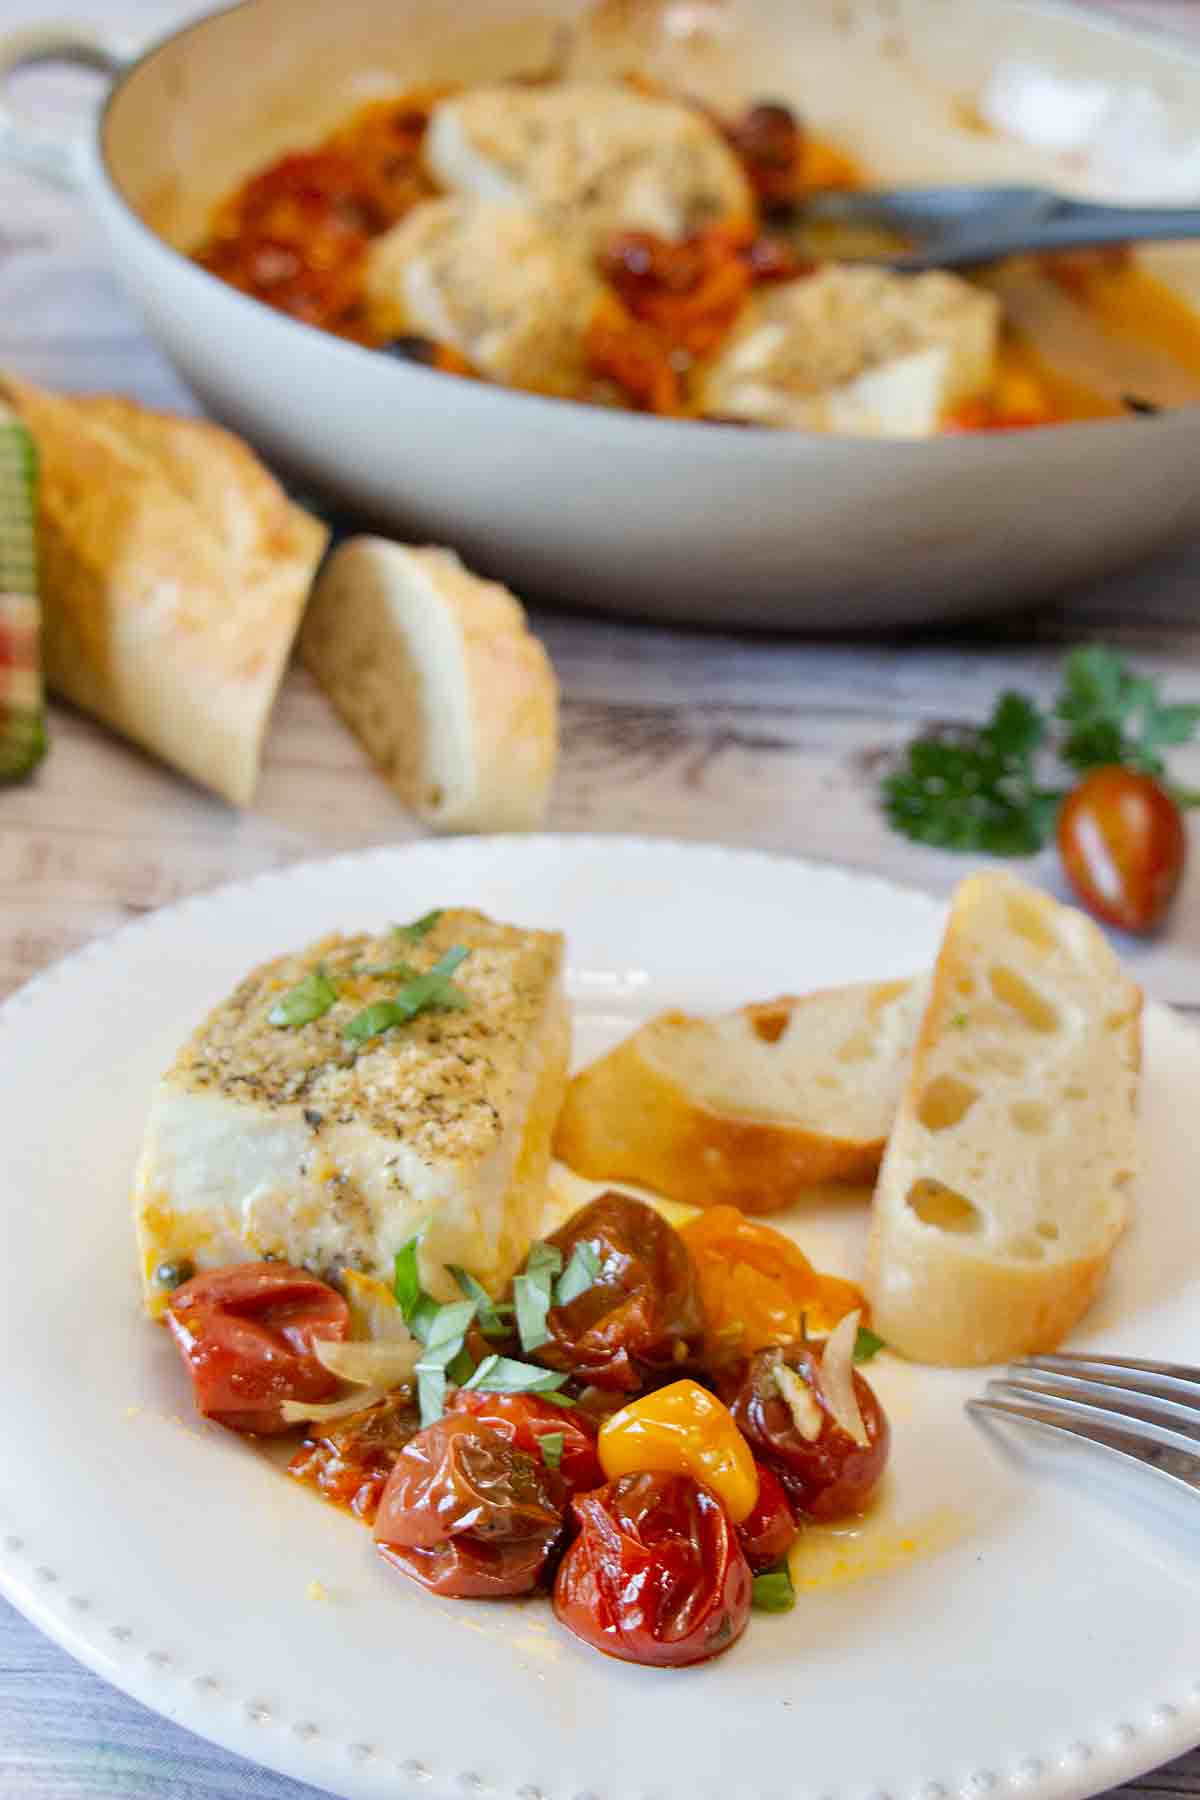 With flaky fish on a juicy and flavorful mix of cherry tomatoes and peppers, One Pan Baked Halibut is an easy, healthy weeknight dinner.